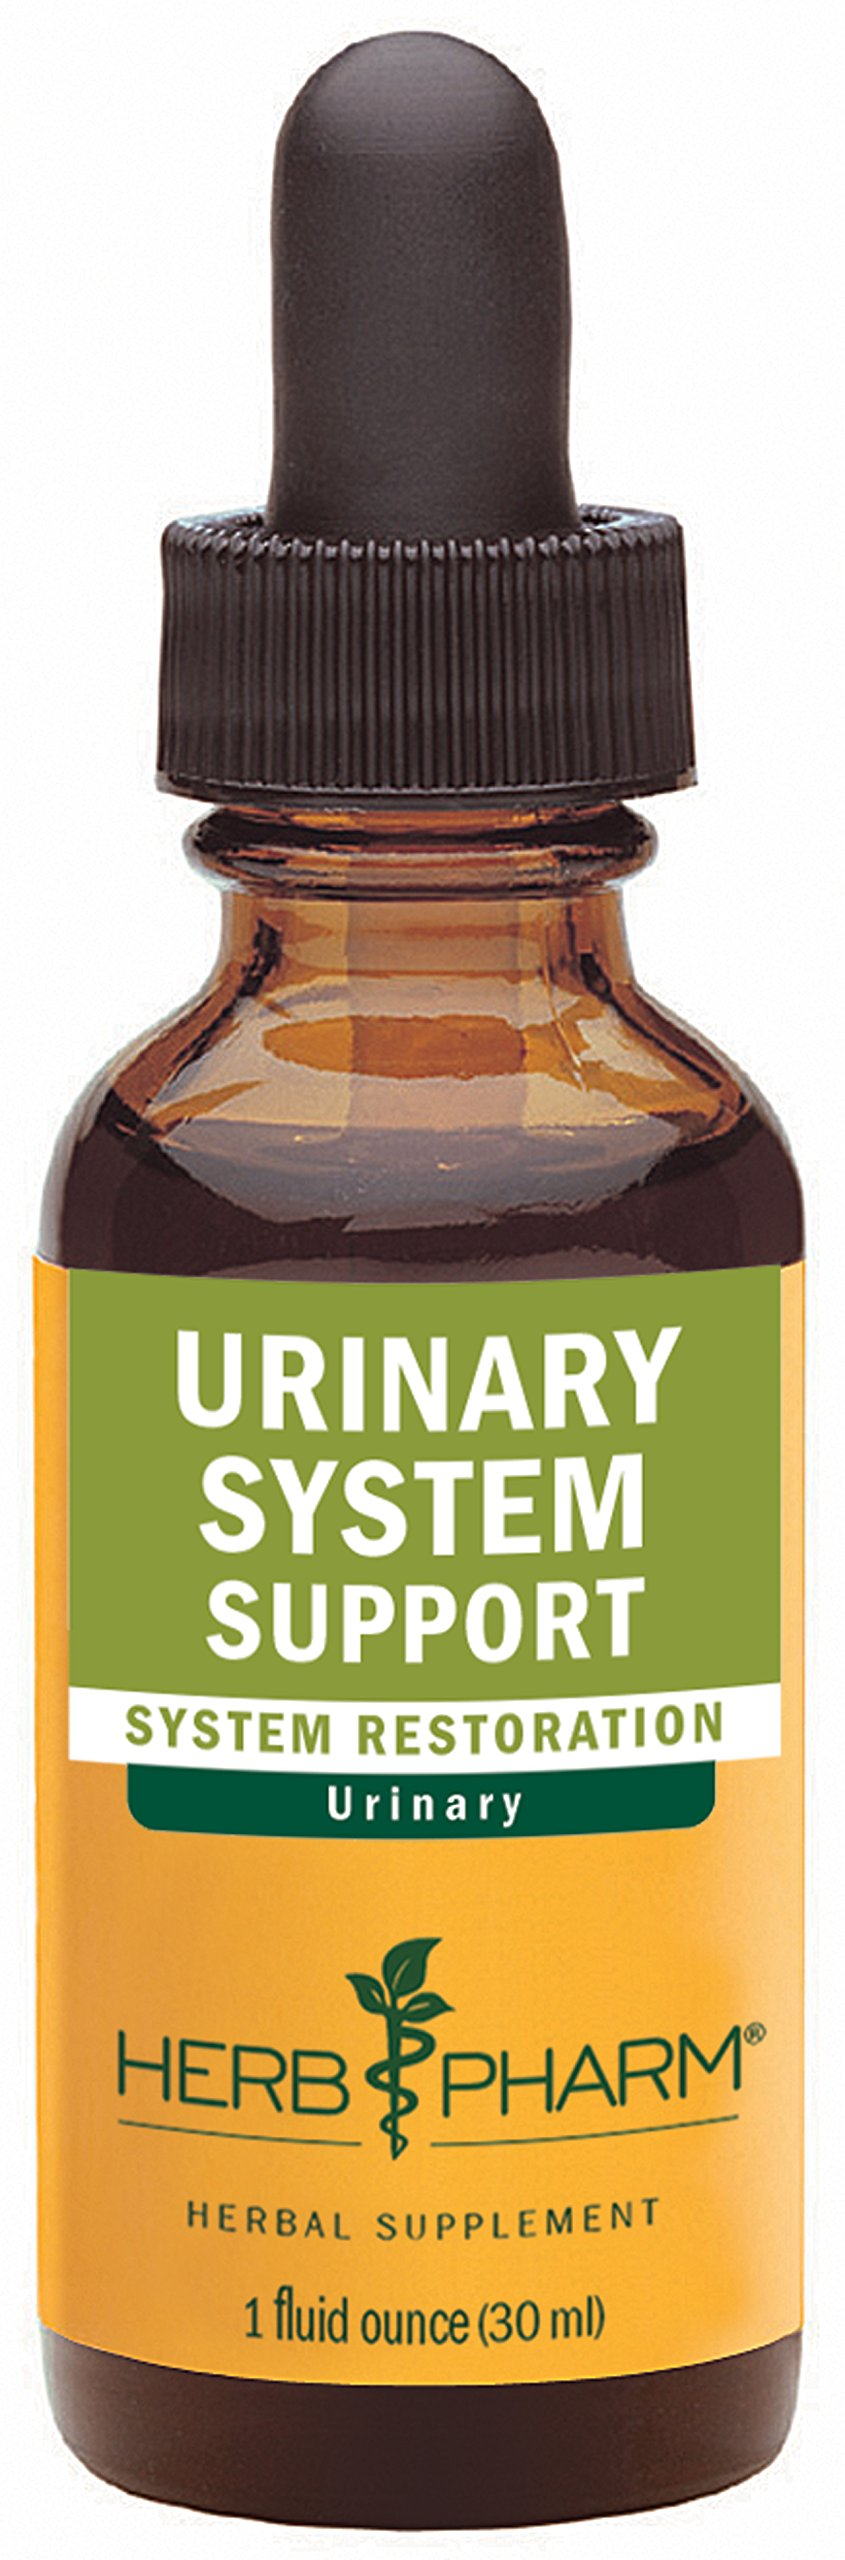 Herb Pharm Urinary System Support Herbal Formula - 1 Ounce